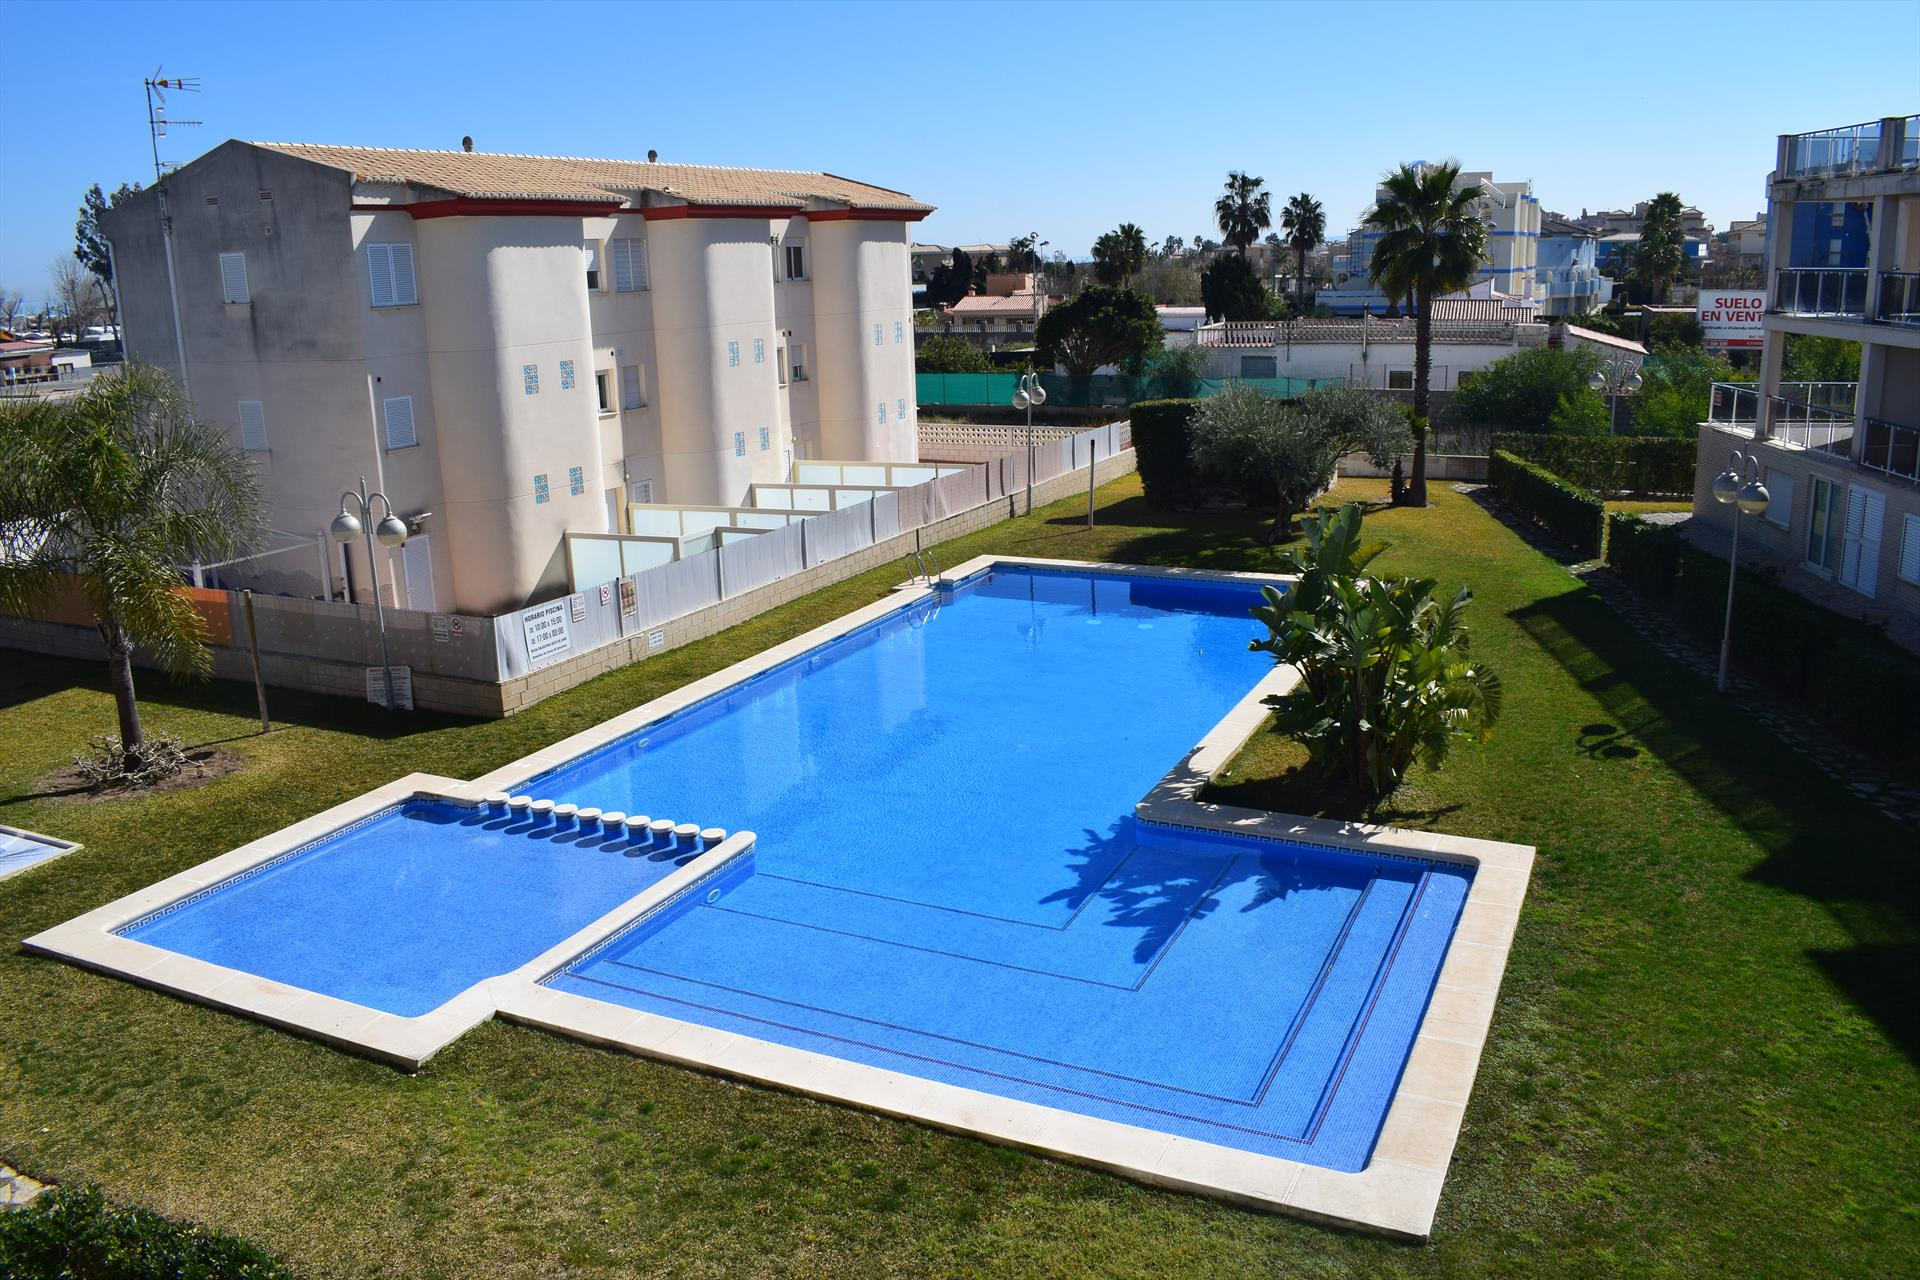 Vora Golf II Playa Rabdells AP470, Modern and comfortable apartment in Oliva, on the Costa Blanca, Spain  with communal pool for 4 persons.....